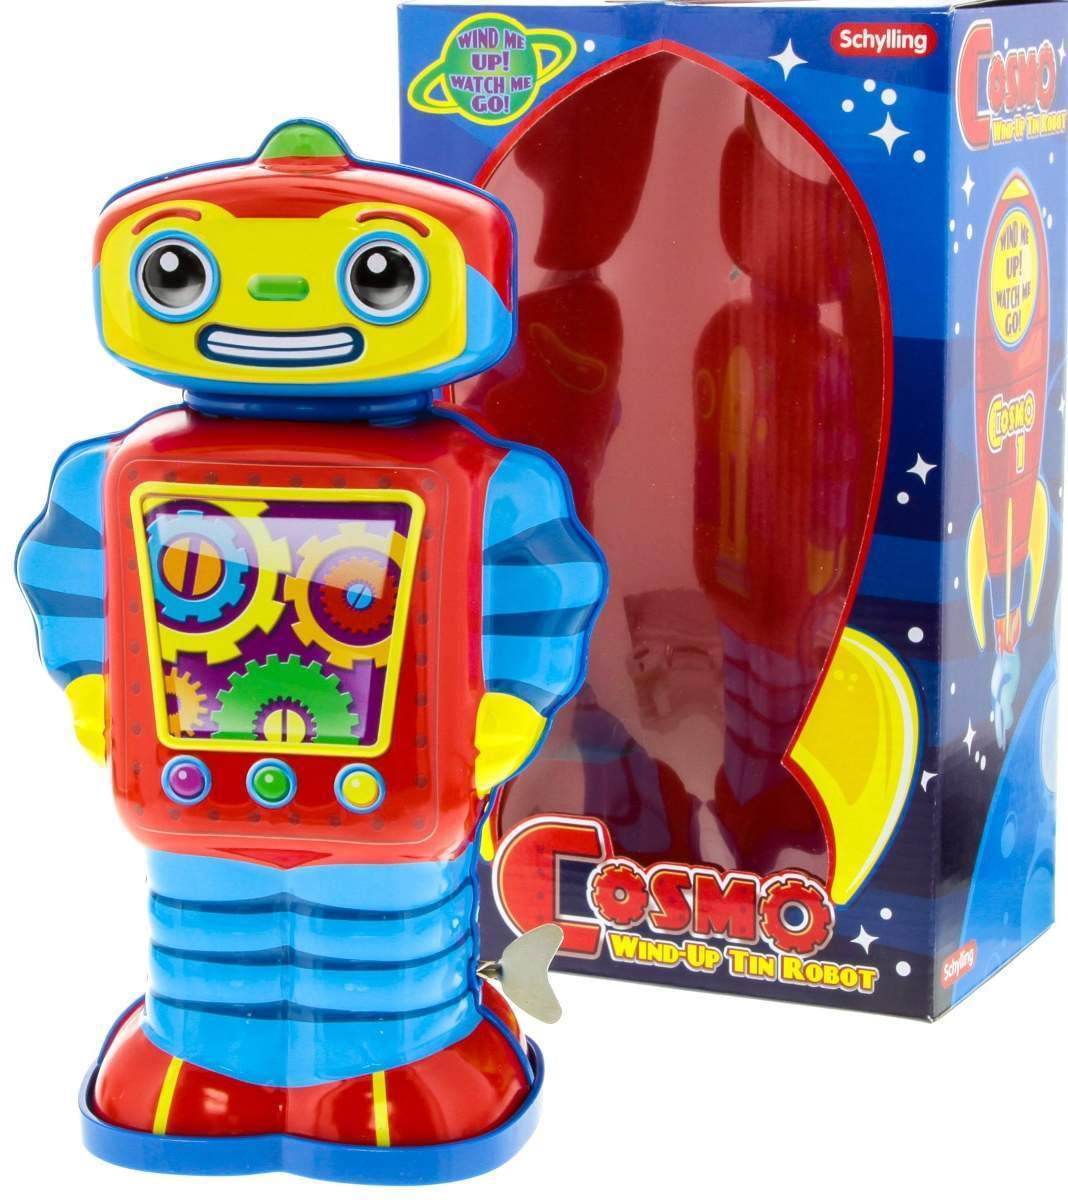 Cosmo Toy Robot New : Cosmo robot by schylling the old robots web site